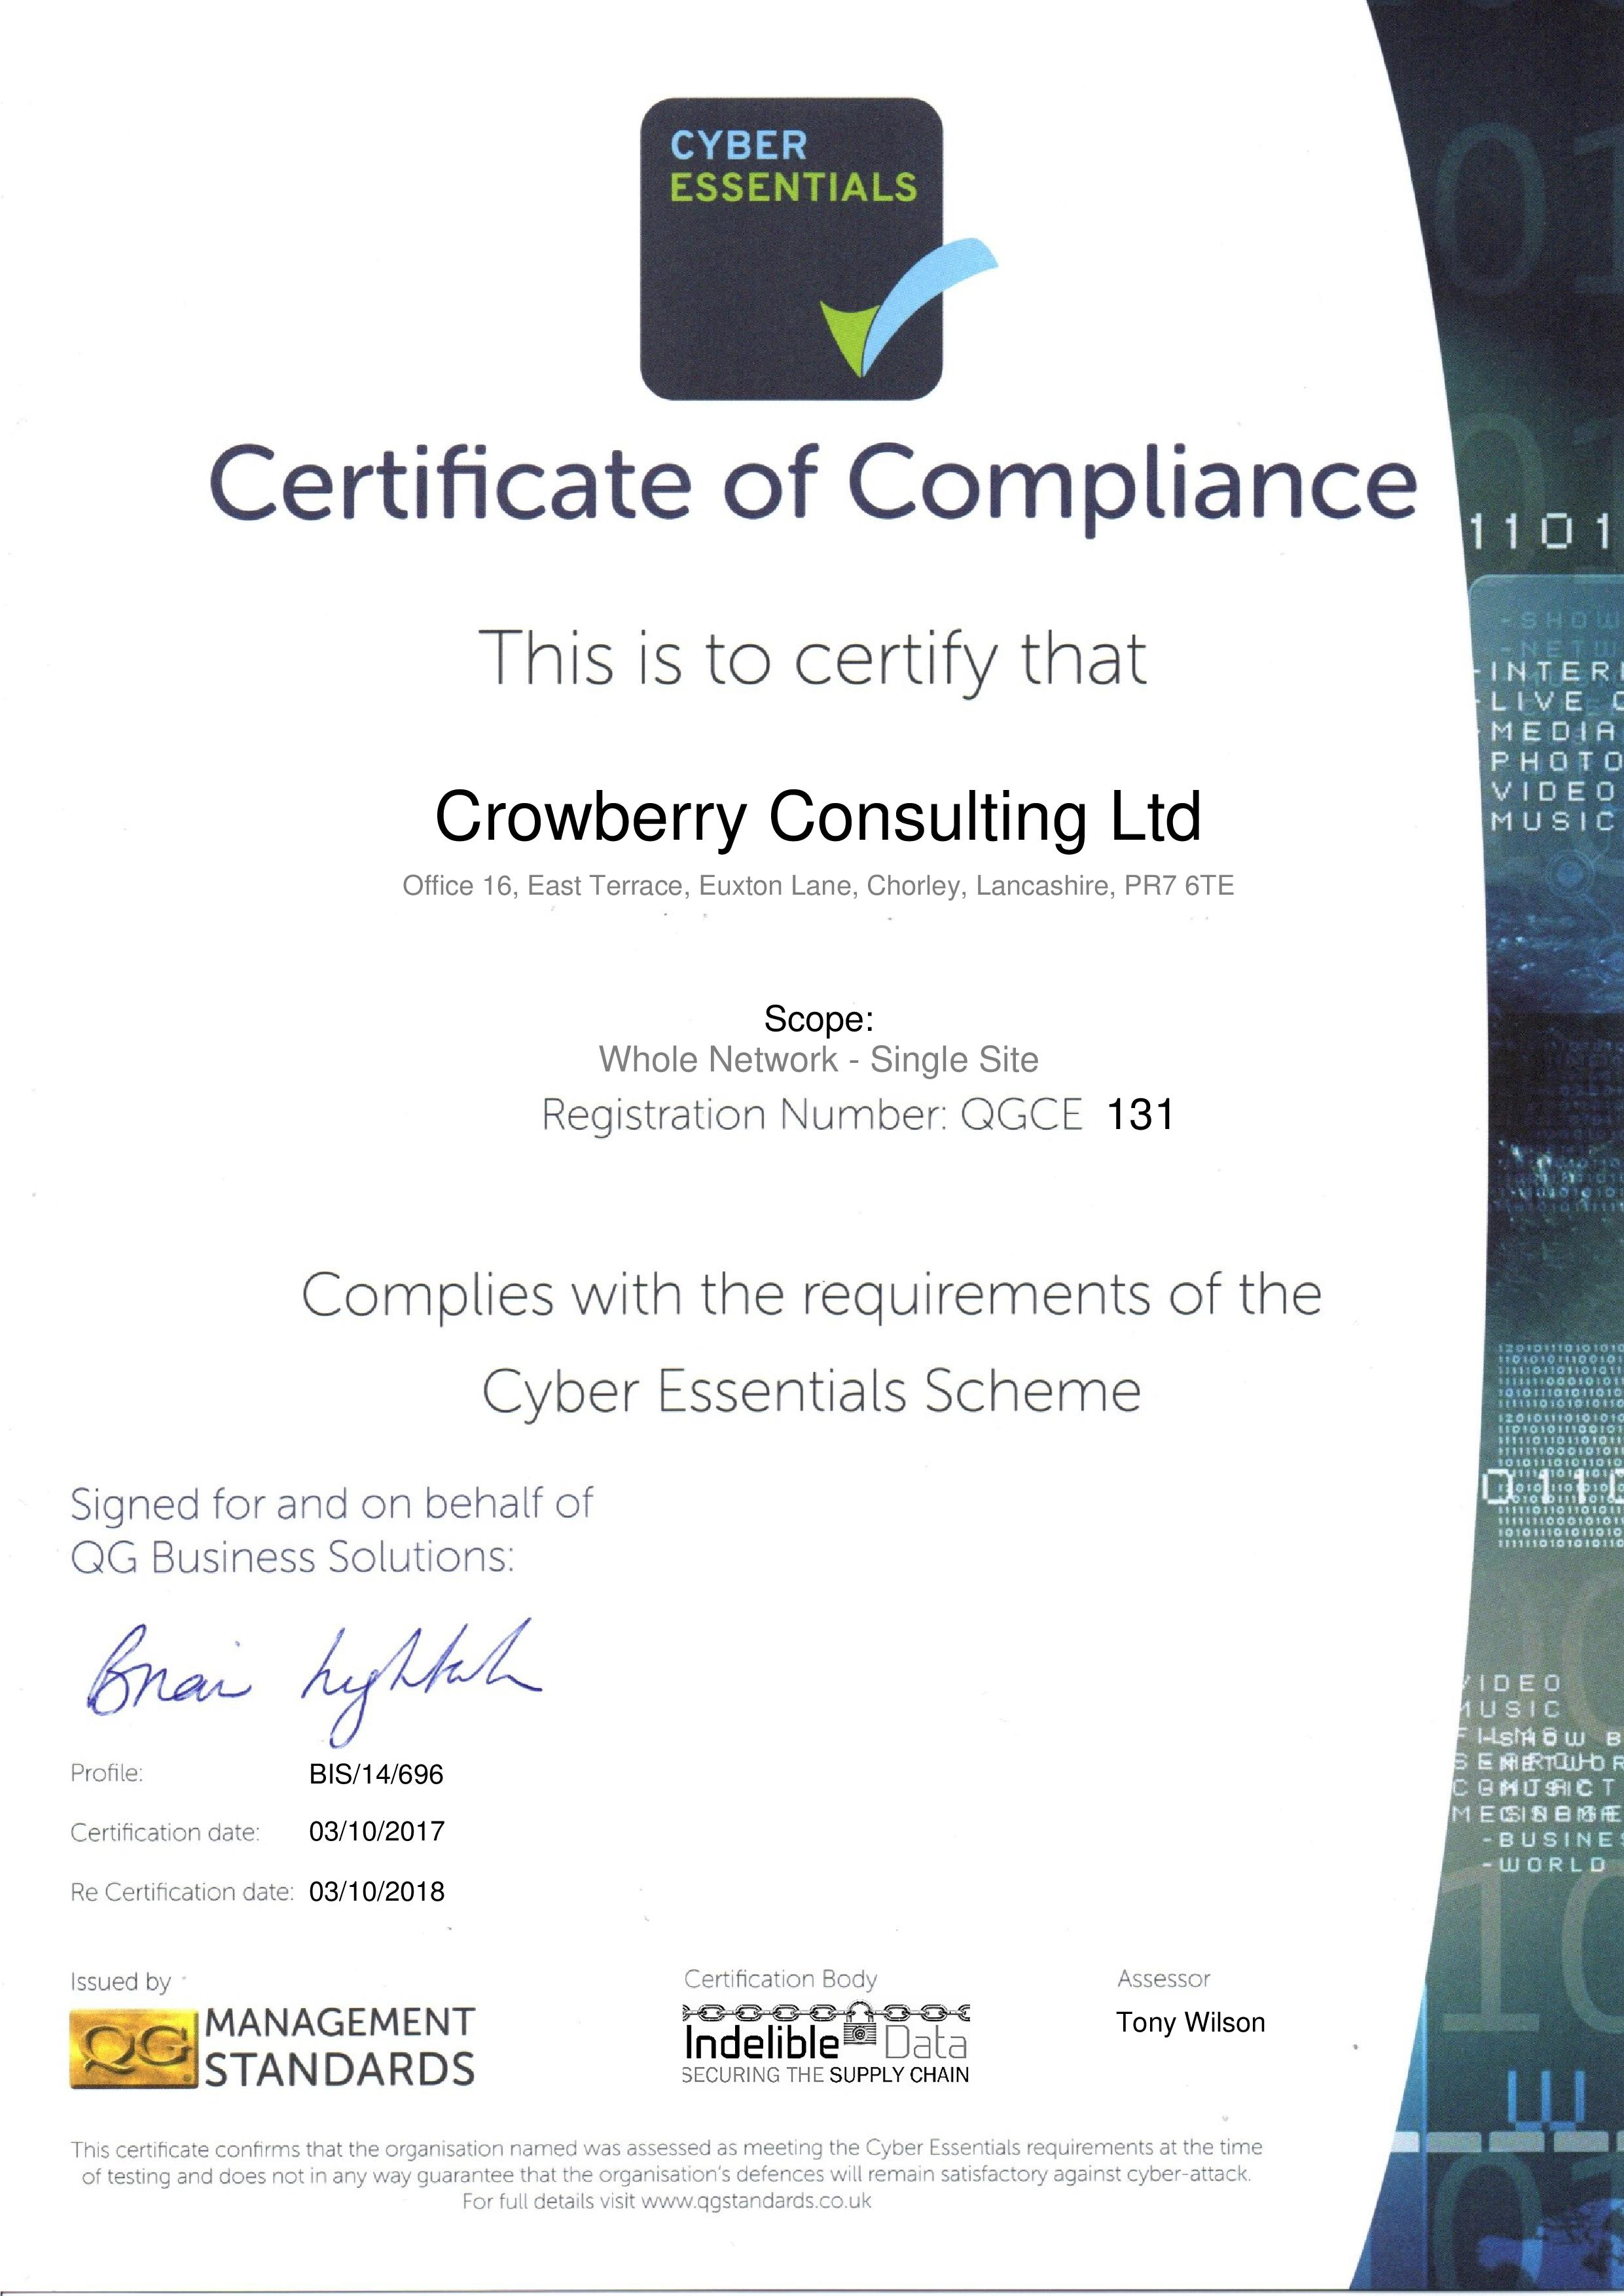 QGCE131 Crowberry Consulting Ltd